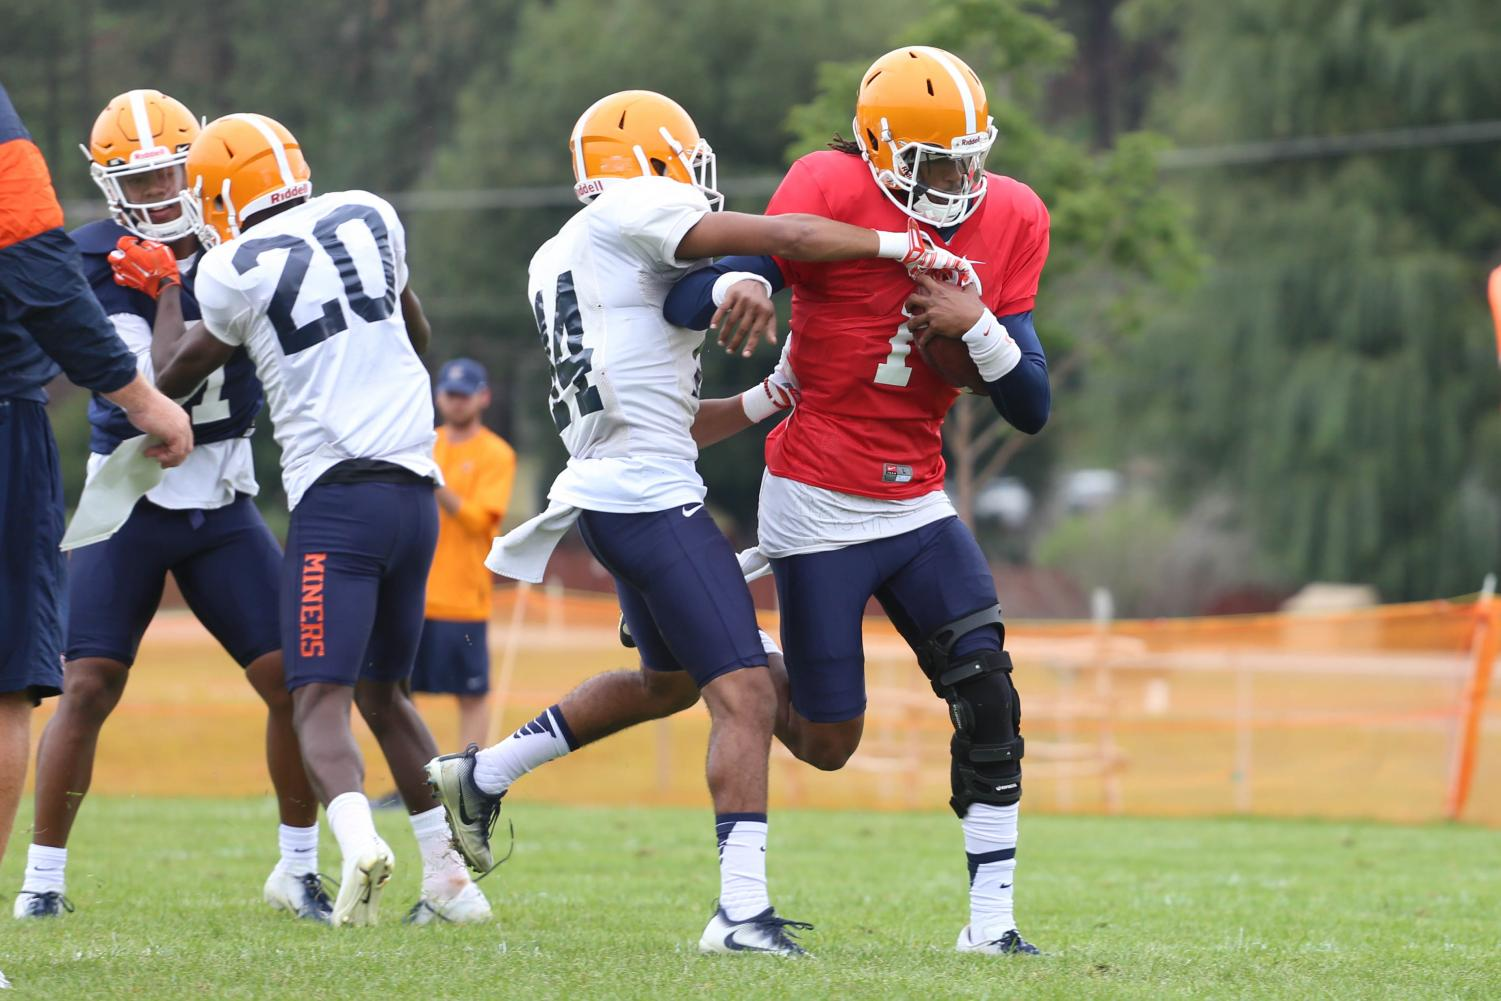 Quarterback+Kai+Locksley+protects+the+ball+as+he+runs+past+the+defender+during+practice+at+Camp+Ruidoso.+